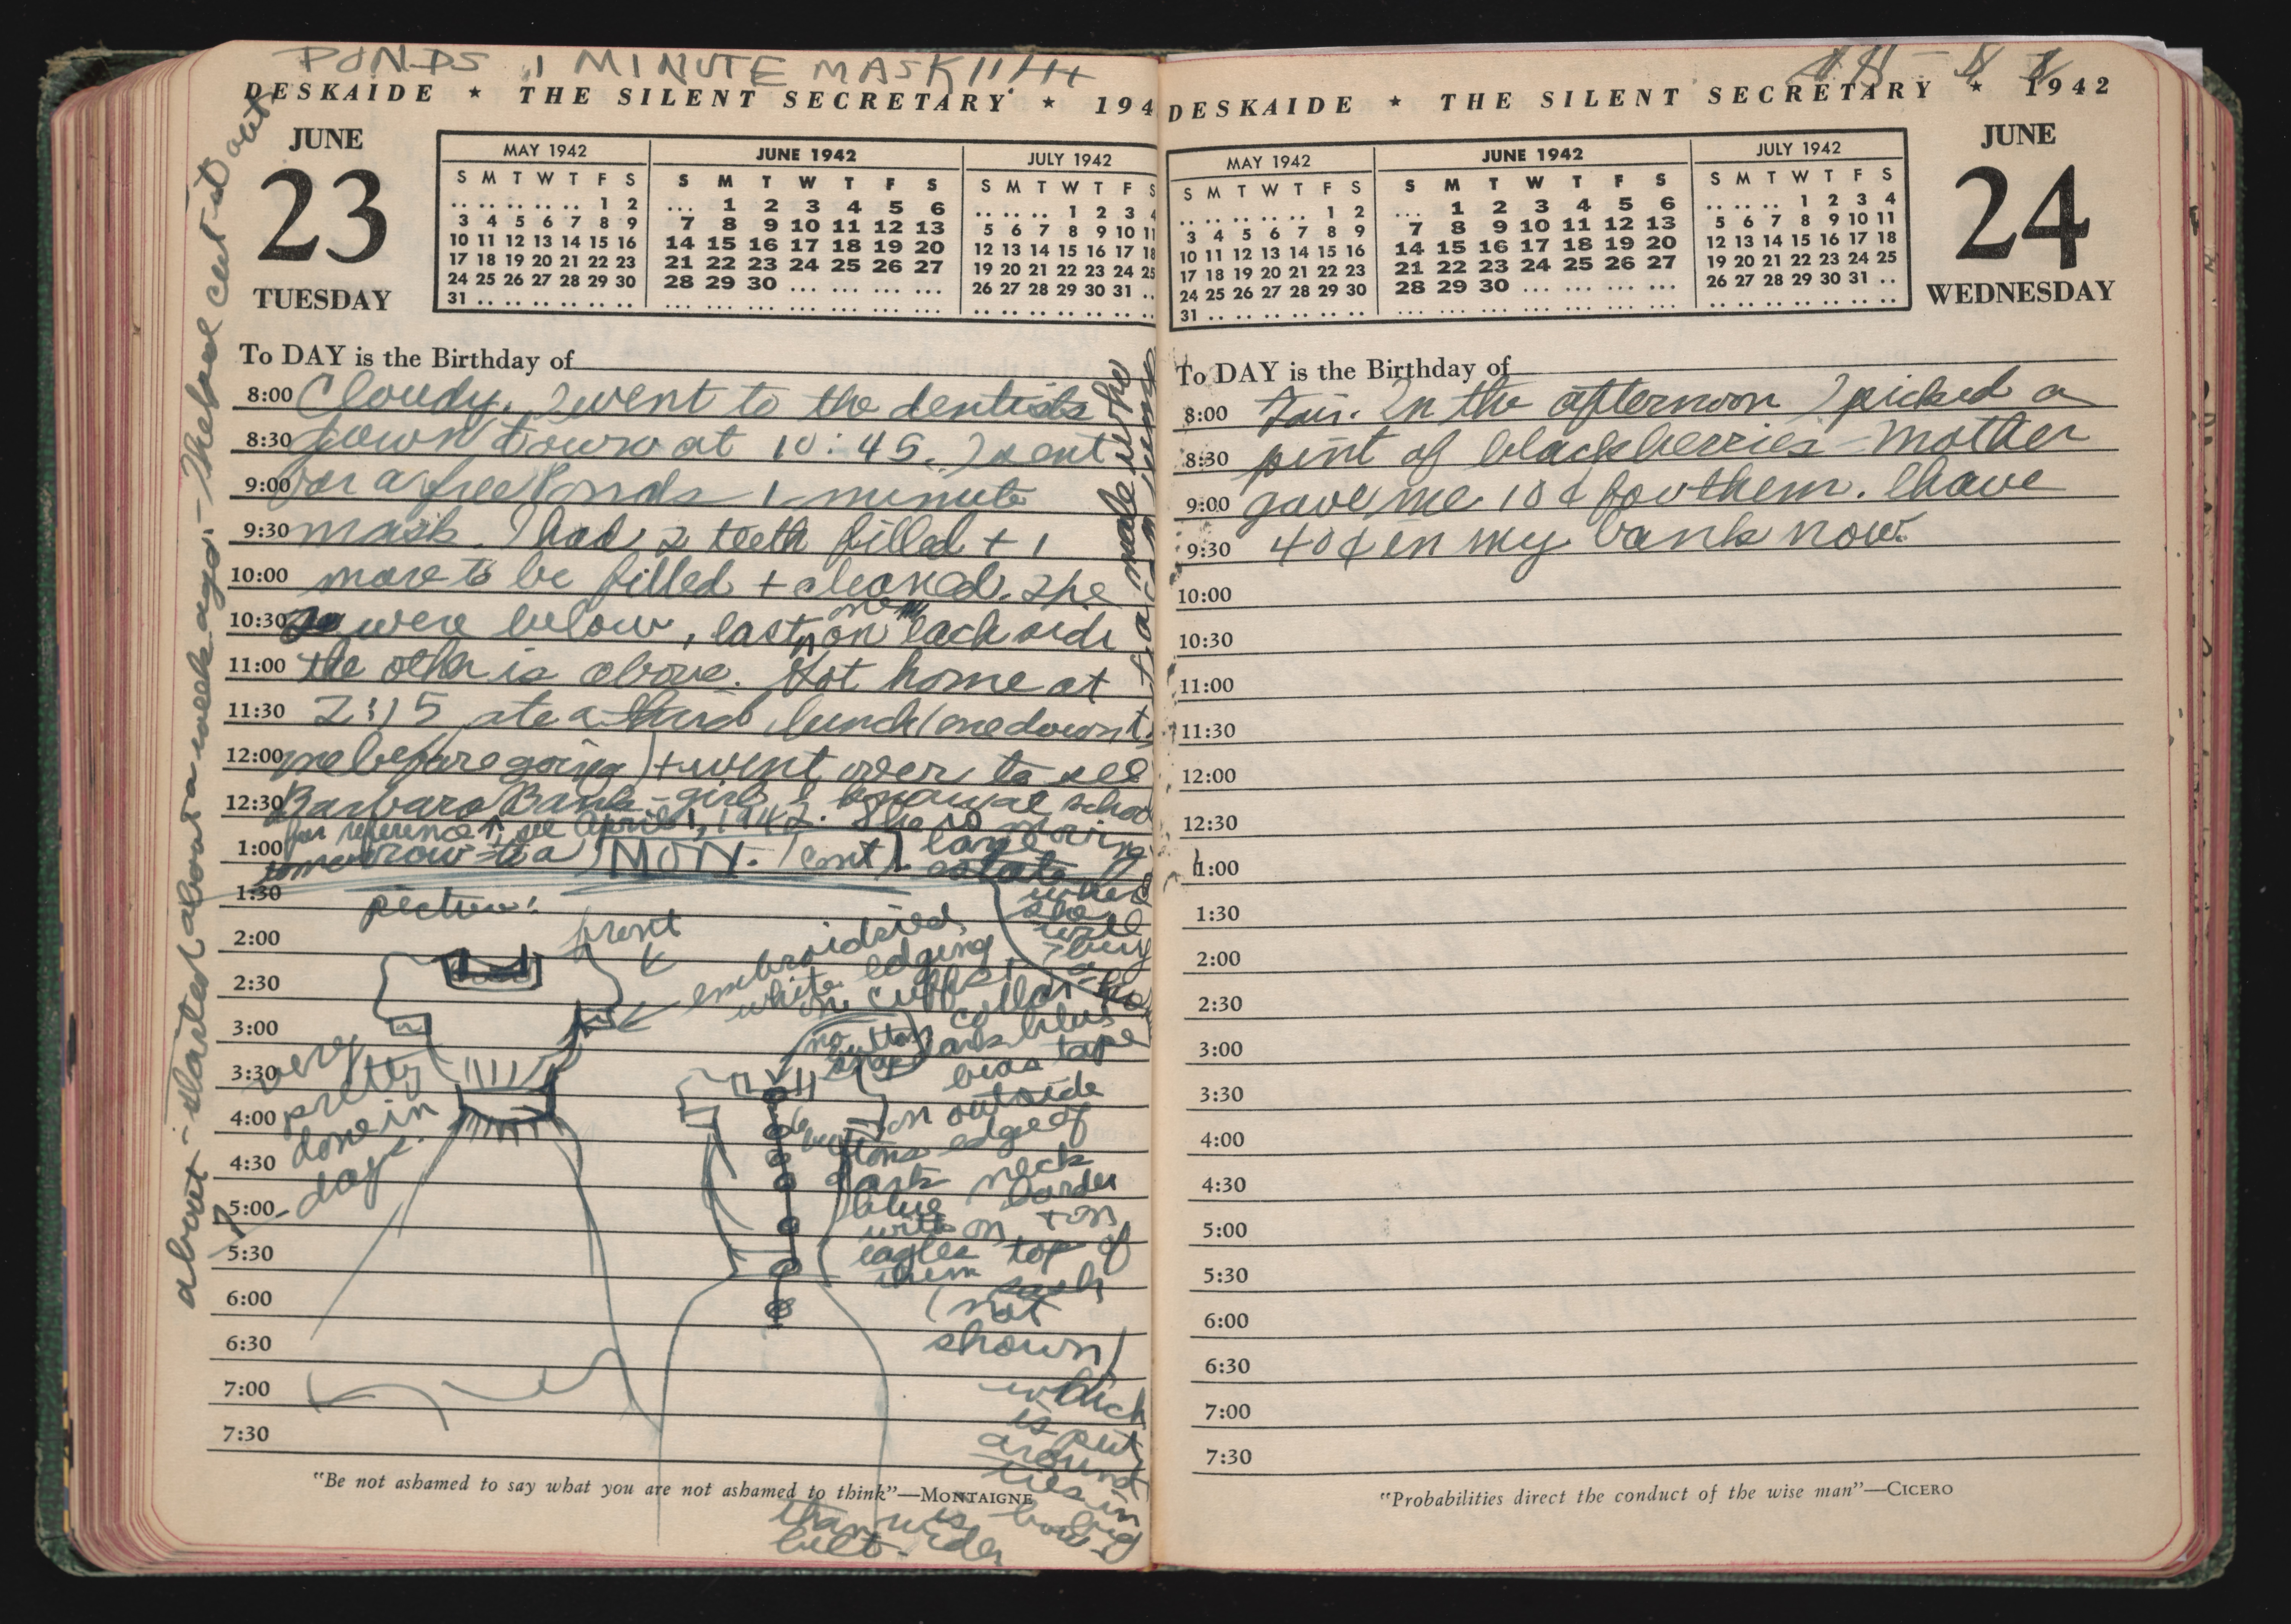 Written diary entry by Doris Sidney Blake, June 23-24, 1942. Contains sketches of dresses.